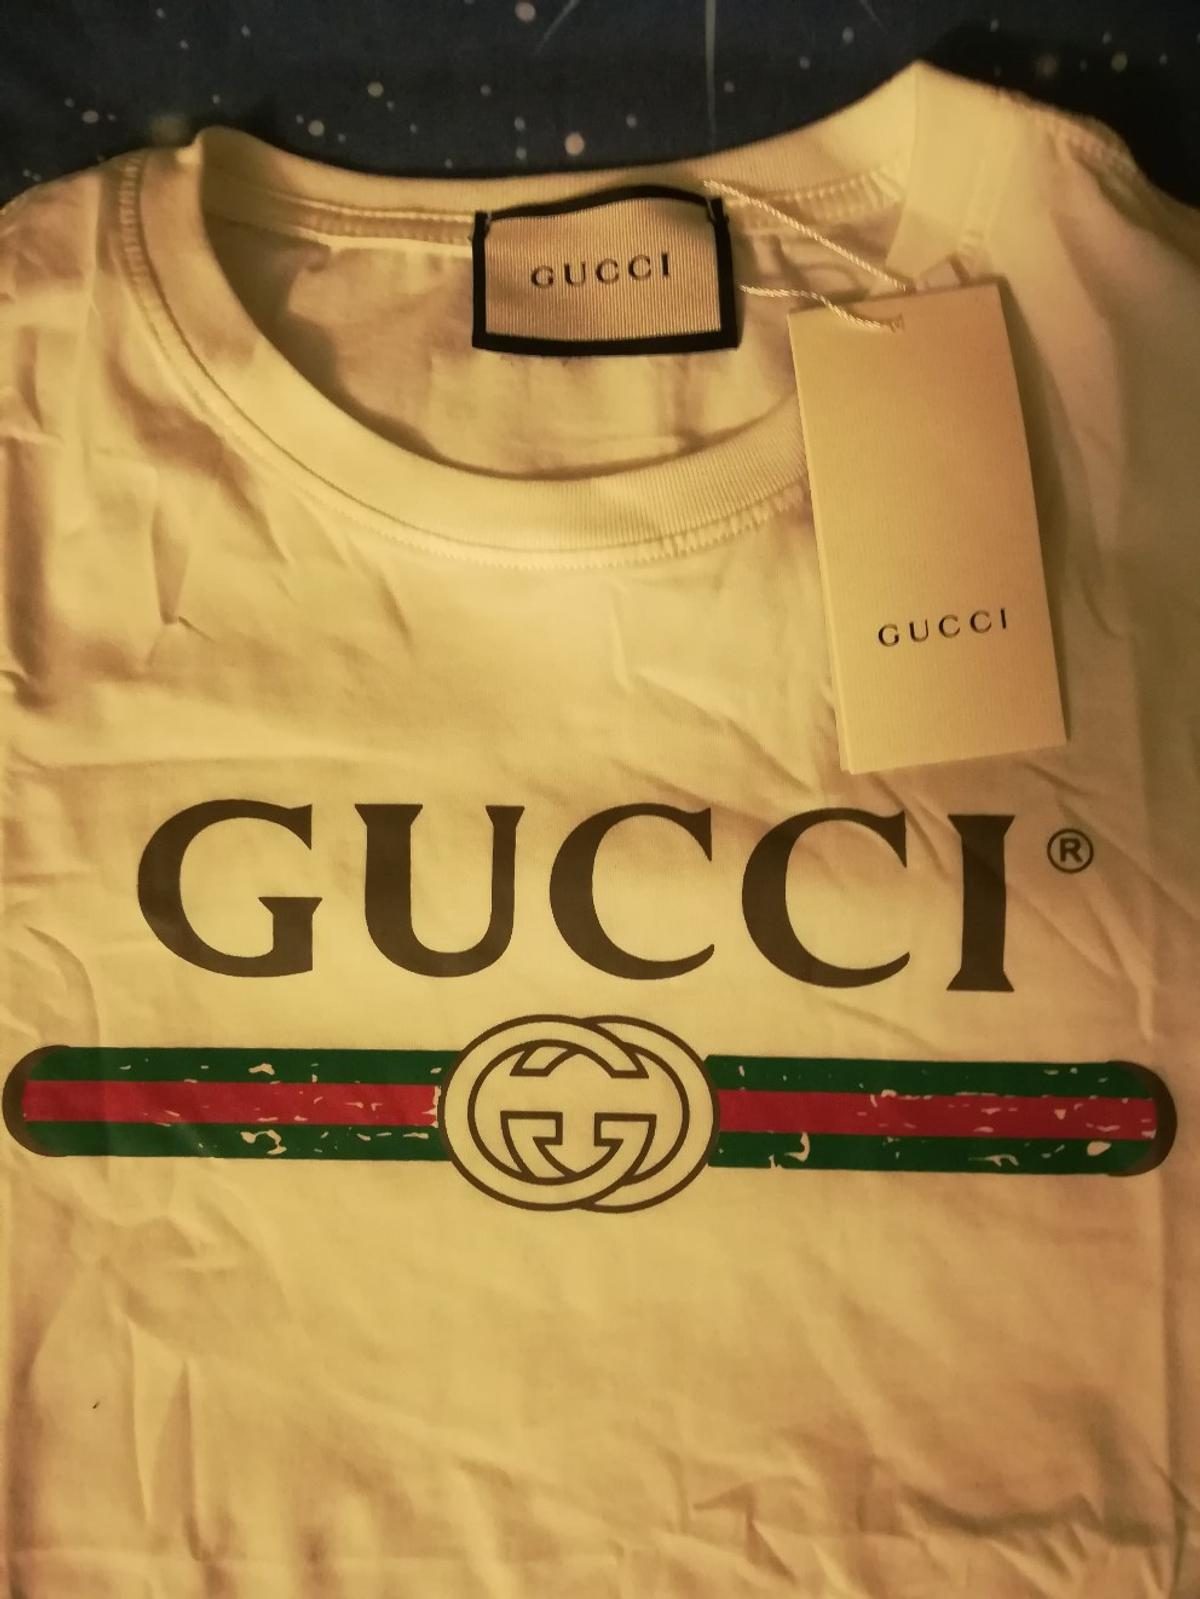 371b629eb T-shirt Gucci vintage logo in 24023 Clusone for €35.00 for sale - Shpock